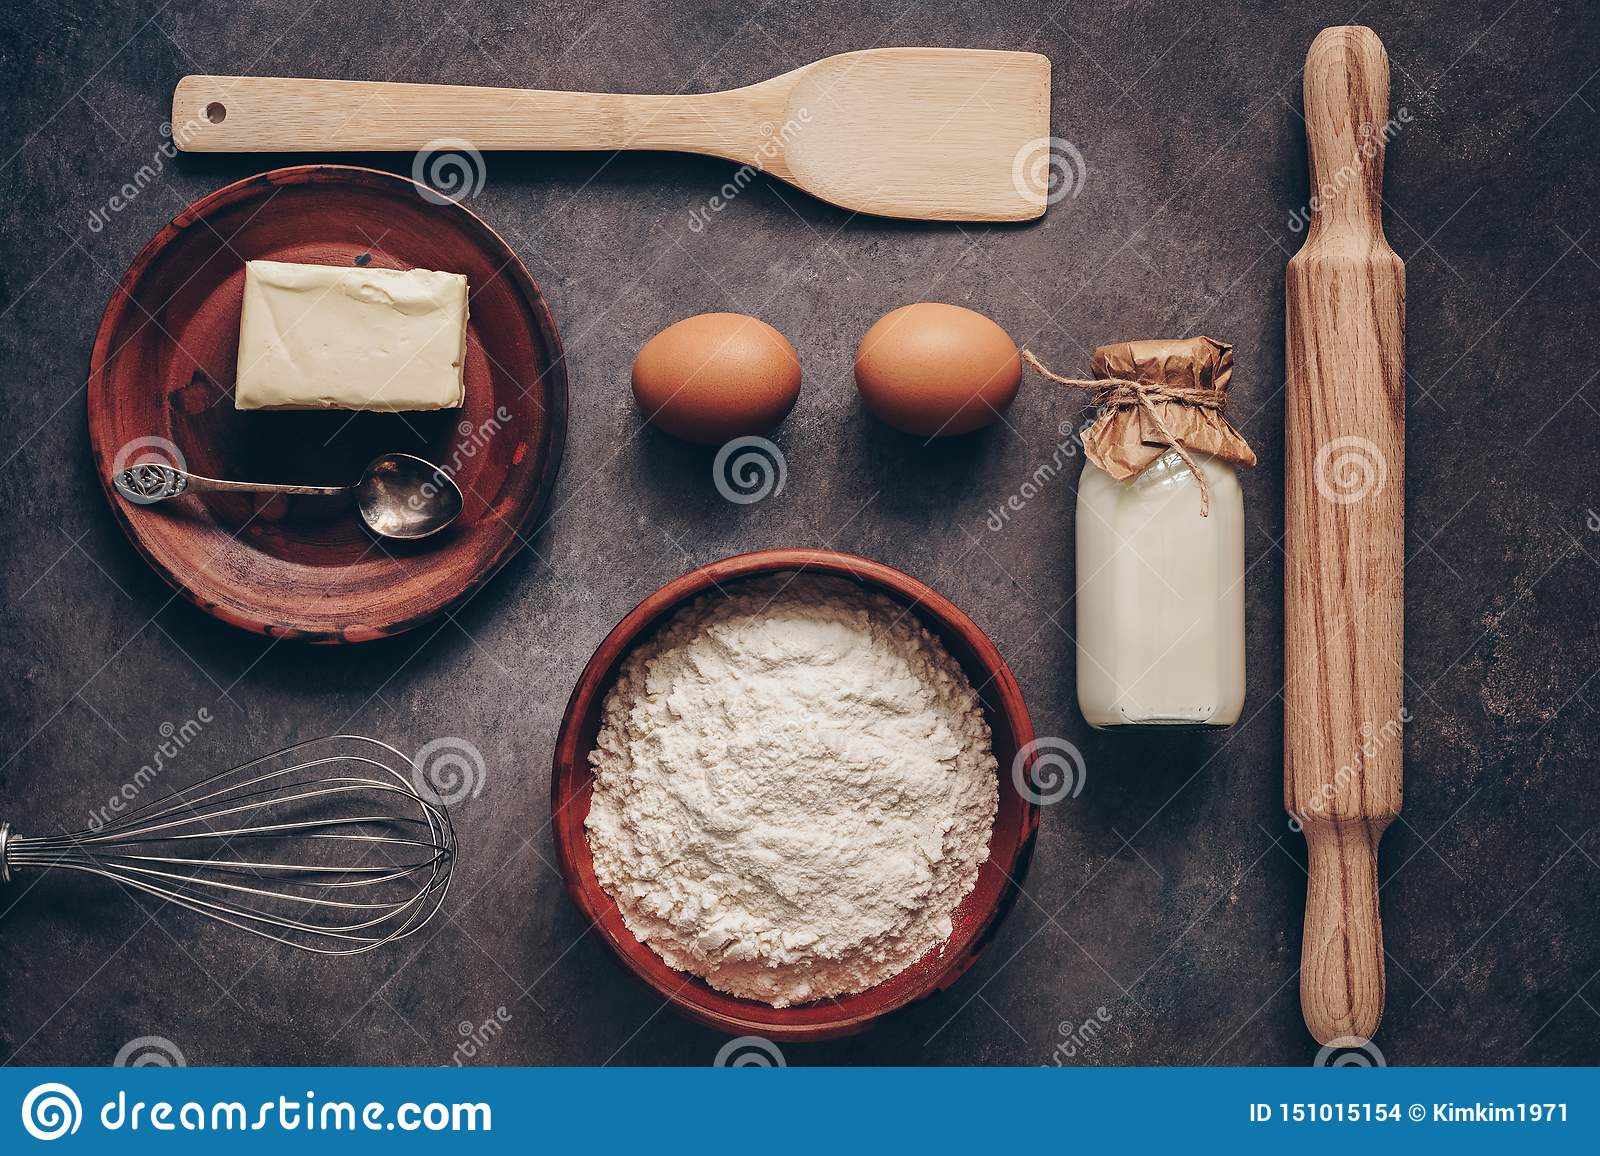 Ingredients for baking on a dark rustic background, flour, butter, eggs, rolling pin, whisk and paddle. Top view, flat lay